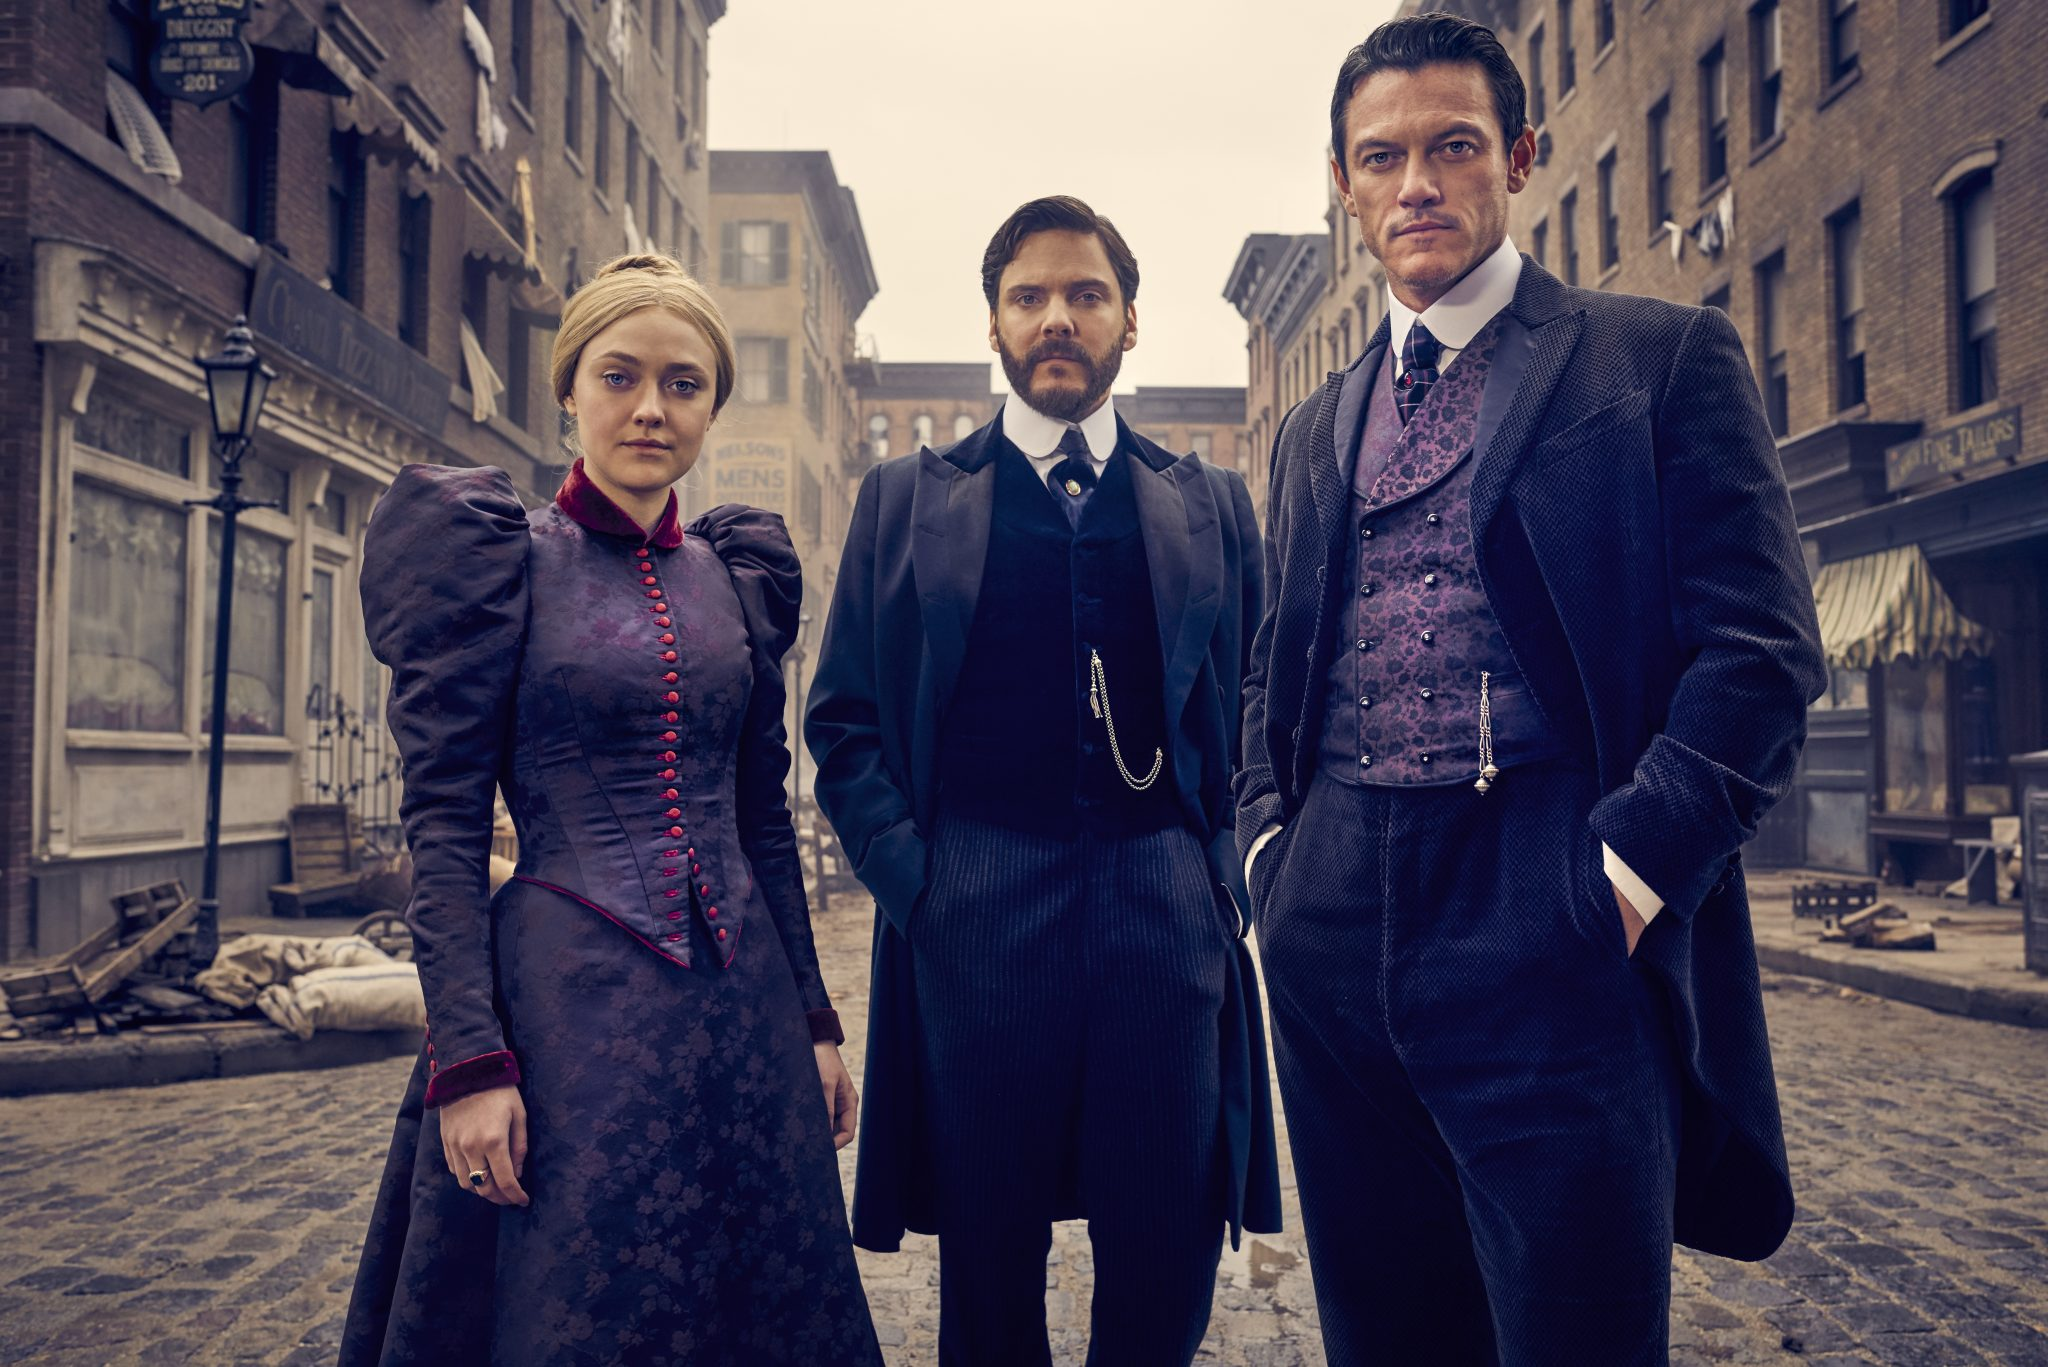 the alienist 'the alienist' illuminates new york's gilded age - cast interview                 wwwhollywoodreportercom/news/alienist-illuminates-new-york-s-gilded-age-cast-interview-1119029.